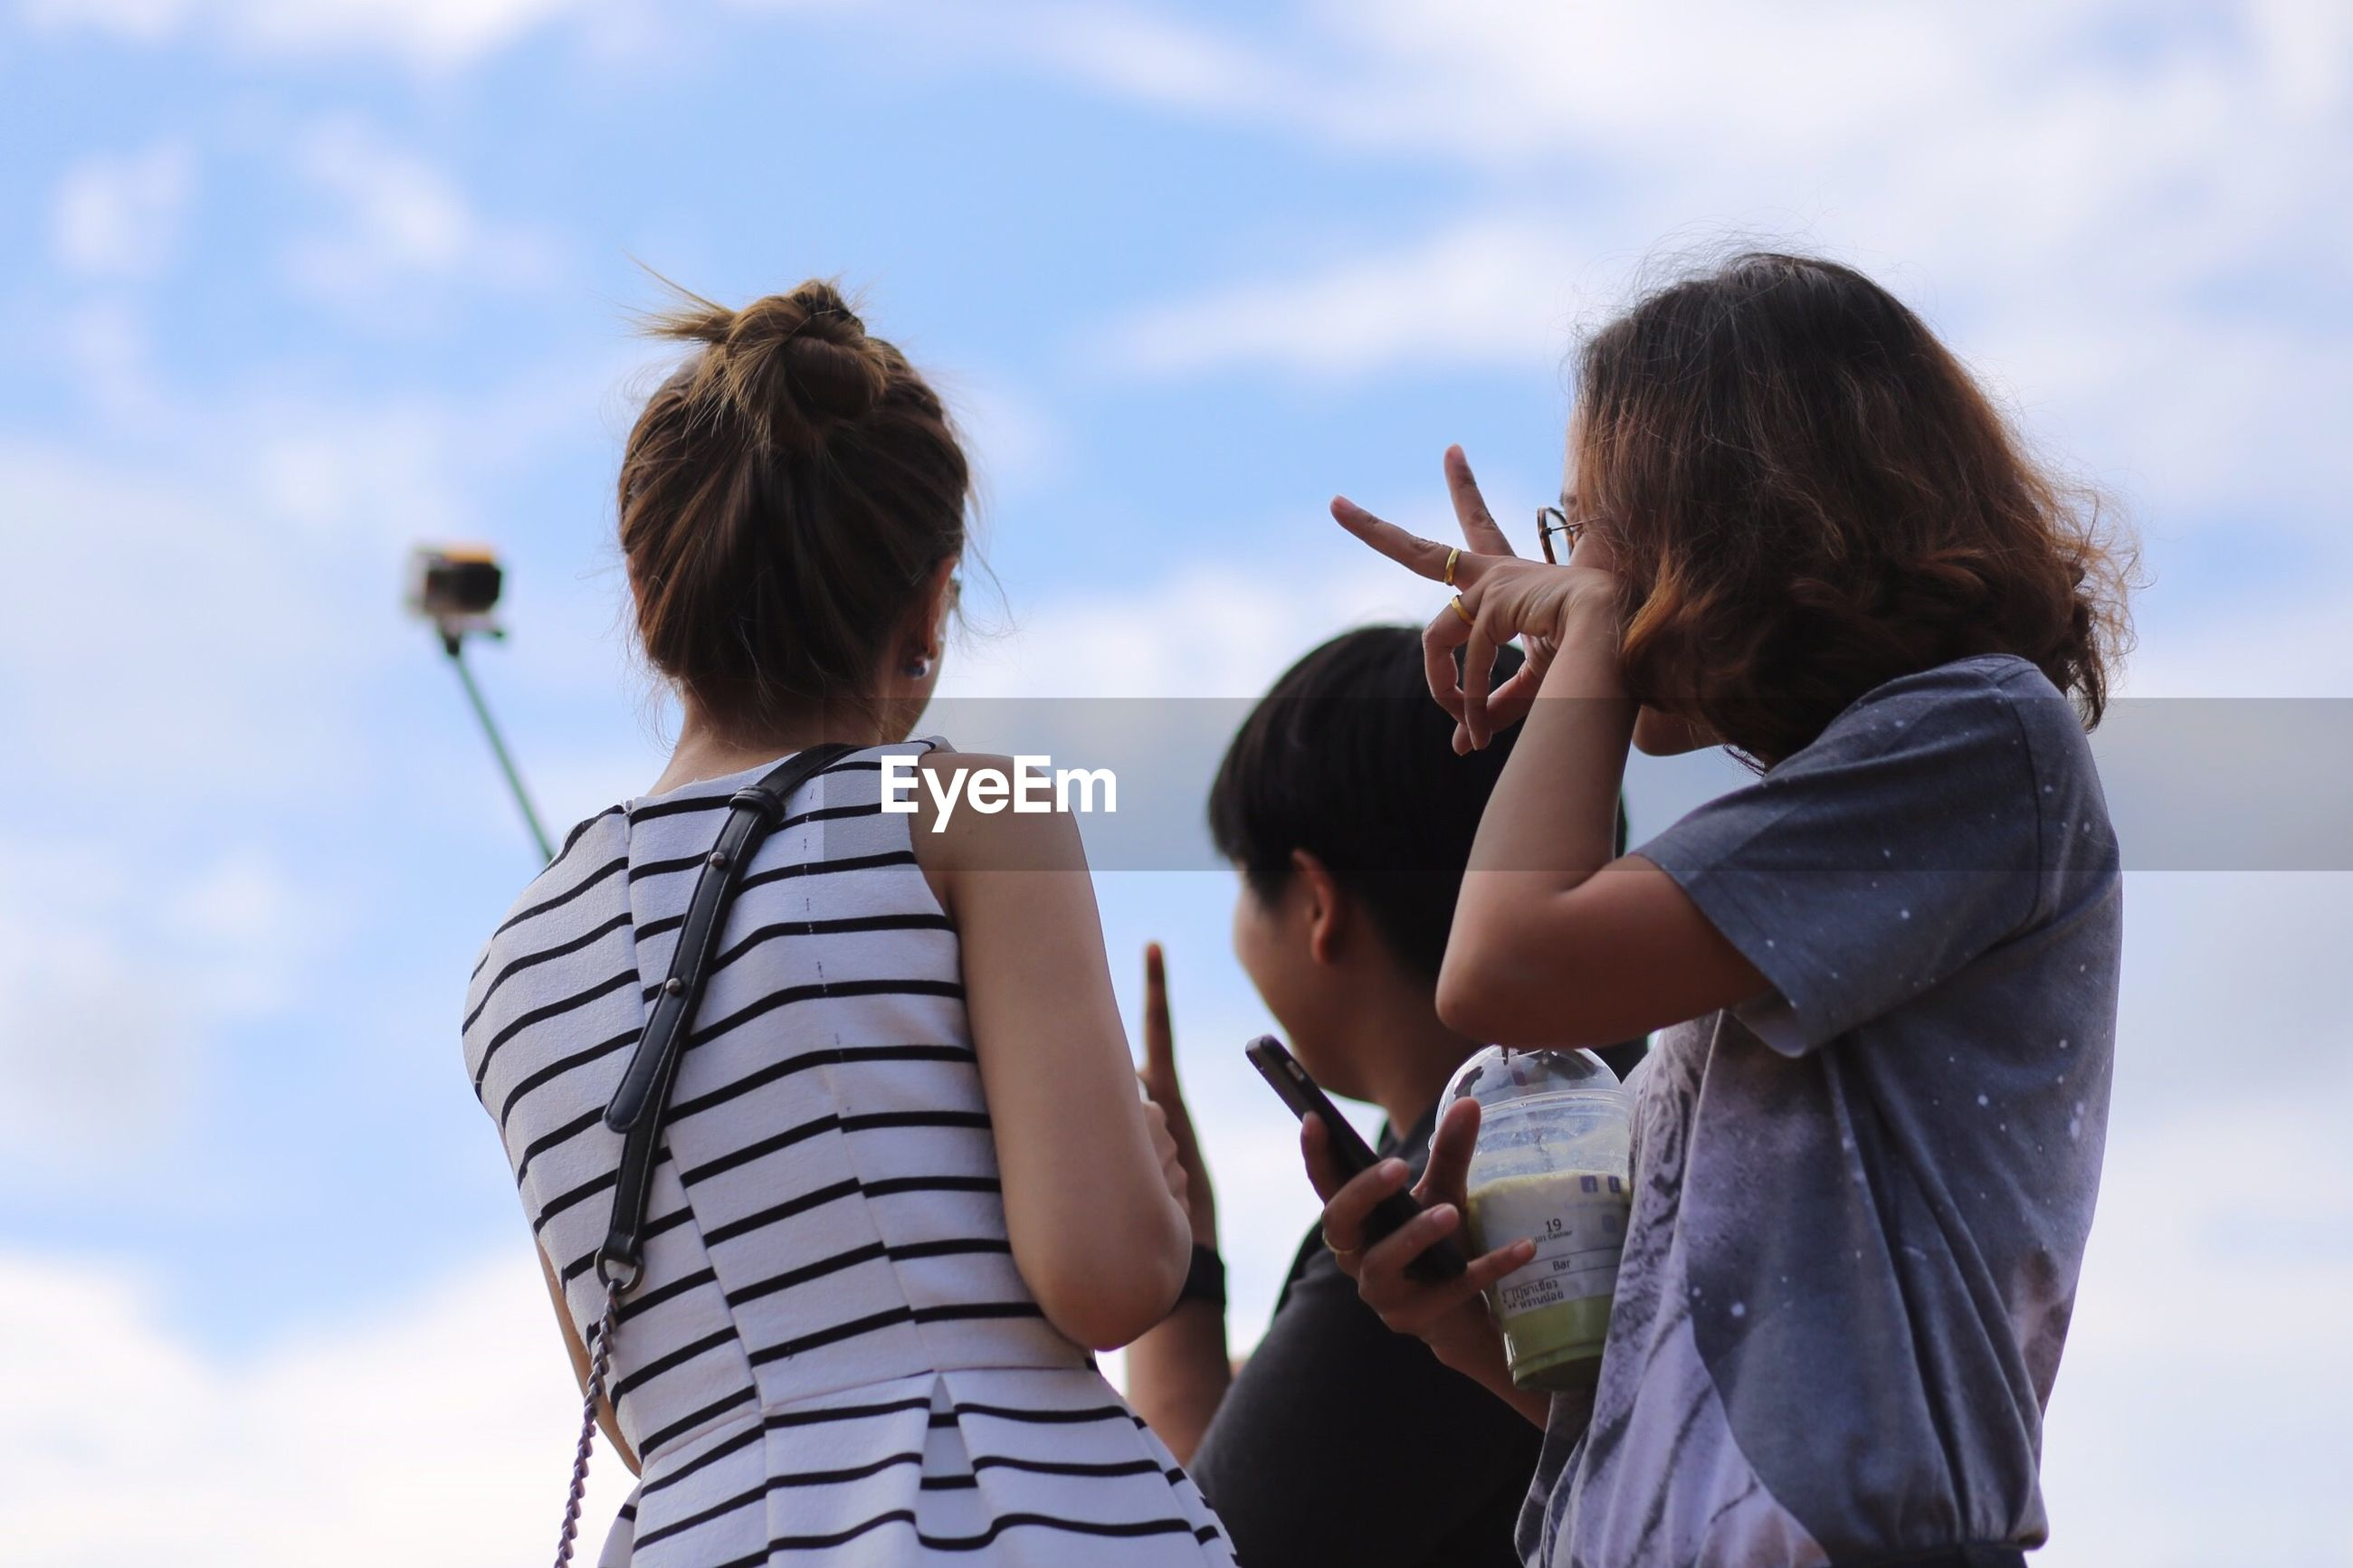 Woman taking selfie with friends against sky